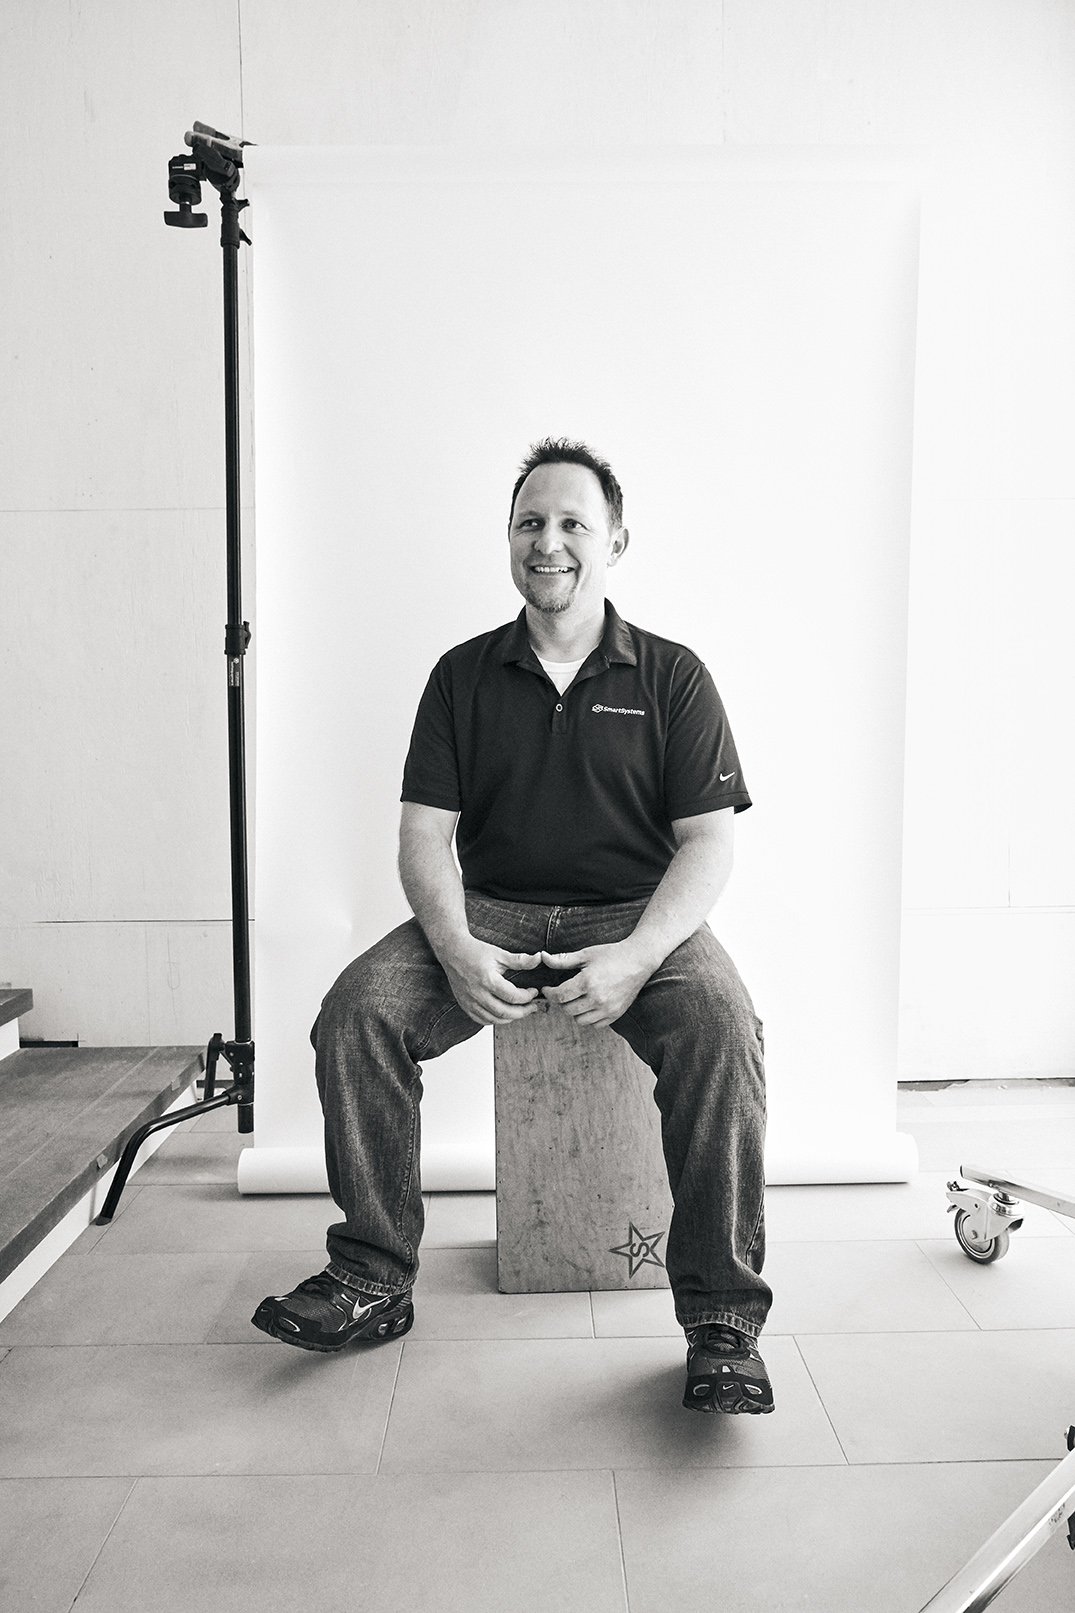 Greg Ashford   |  Smart Homes AV and Lighting Control Specialist. Husband. Proud dad of hockey player.